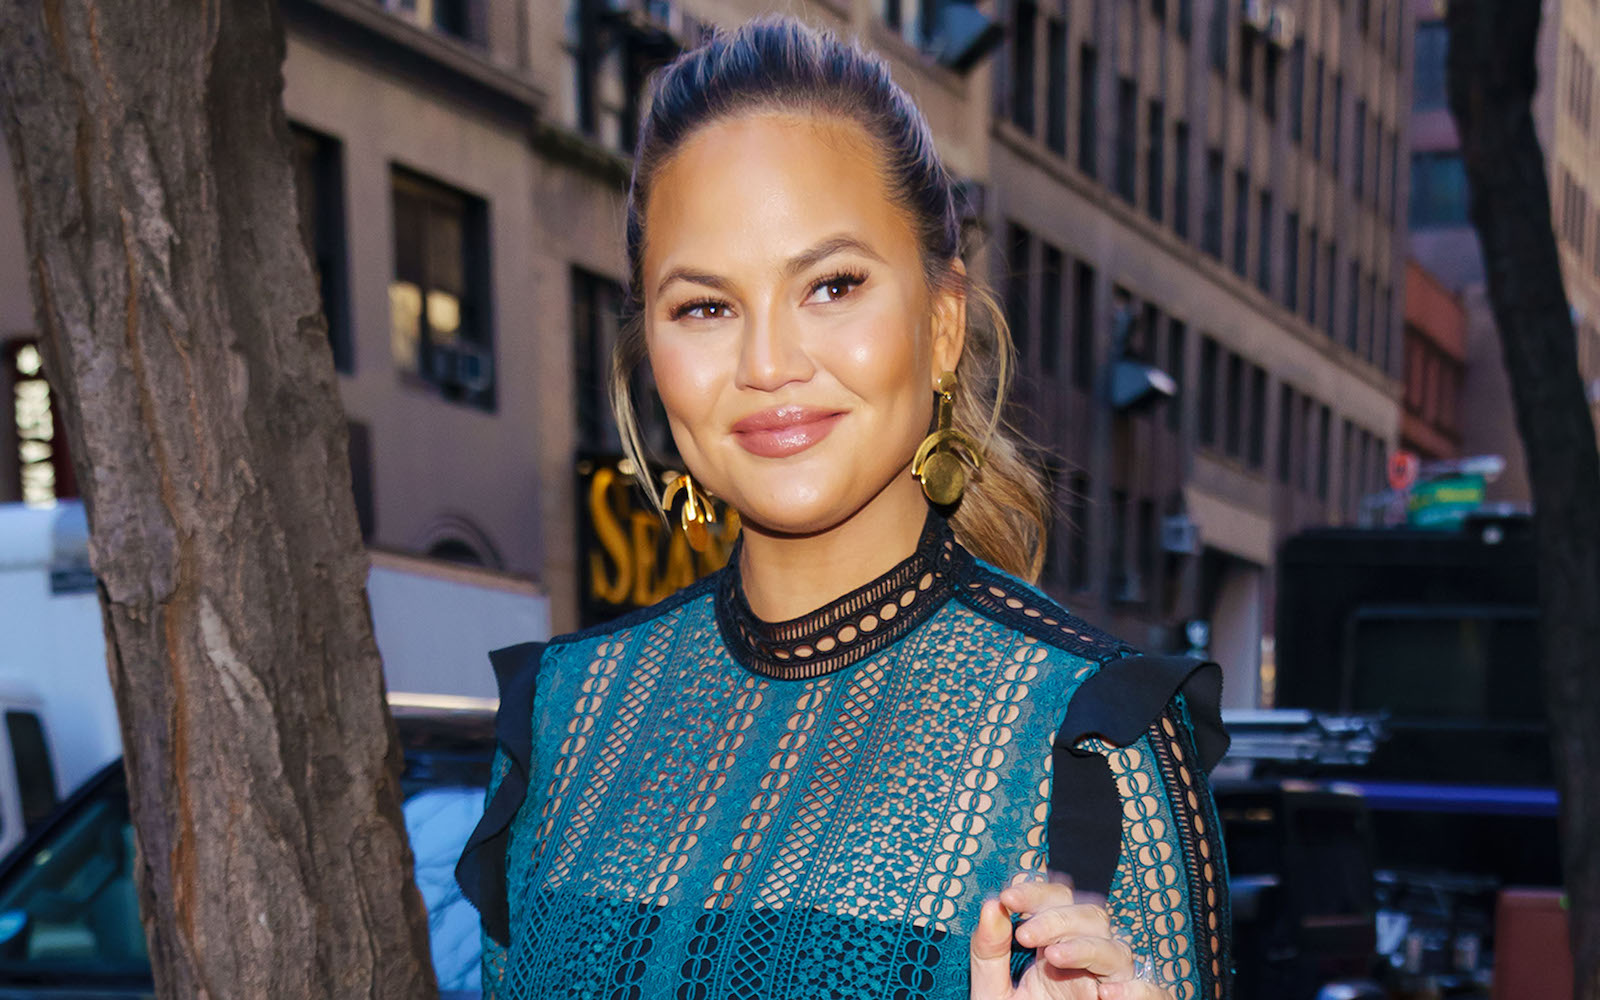 Chrissy Teigen departs the Today Show on January 31, 2018 in New York City.